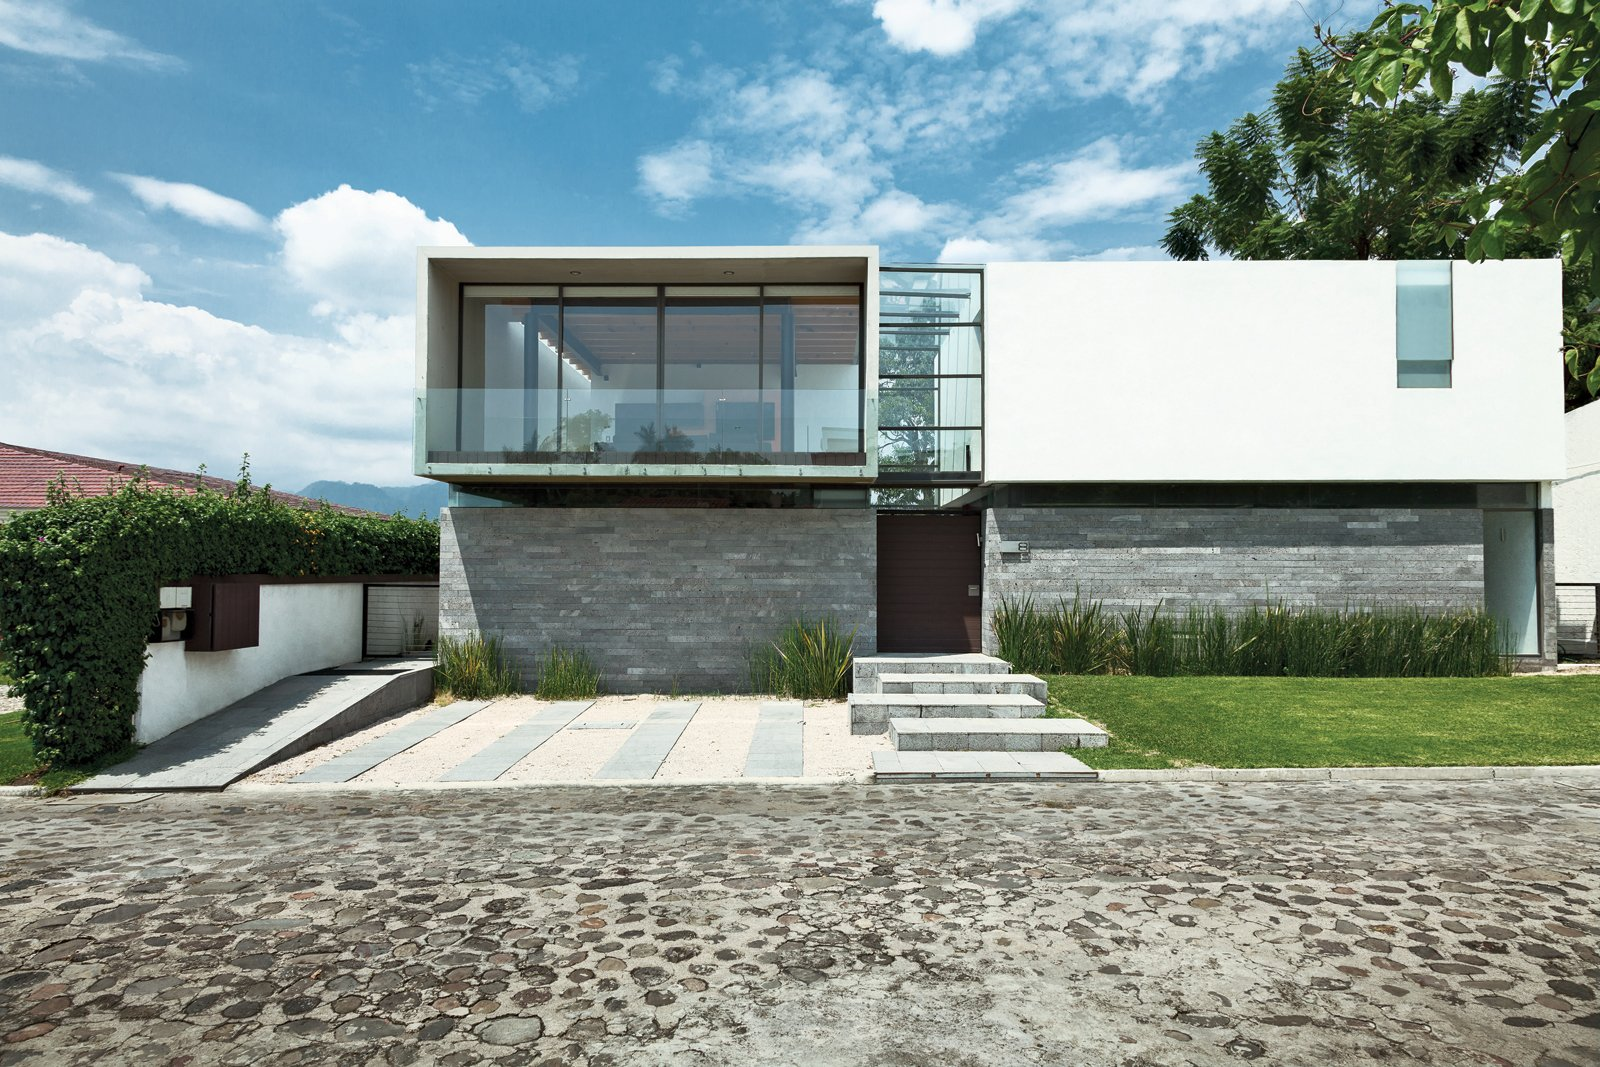 Exterior, Concrete Siding Material, Flat RoofLine, Stone Siding Material, House Building Type, Metal Siding Material, and Glass Siding Material Architect Joaquin Castillo blends inexpensive materials, the odd splurge, and a refined modernist sensibility to create an affordable weekend house for brothers Alfredo and Guillermo Oropeza. The facade is a juxtaposition of rough-hewn local stone, smooth concrete, glass, and steel—the material palette used throughout the structure.  How Boxy Would You Go? A Look at Modern Box Homes by Allie Weiss from An Affordable High-Design Vacation Home in Mexico